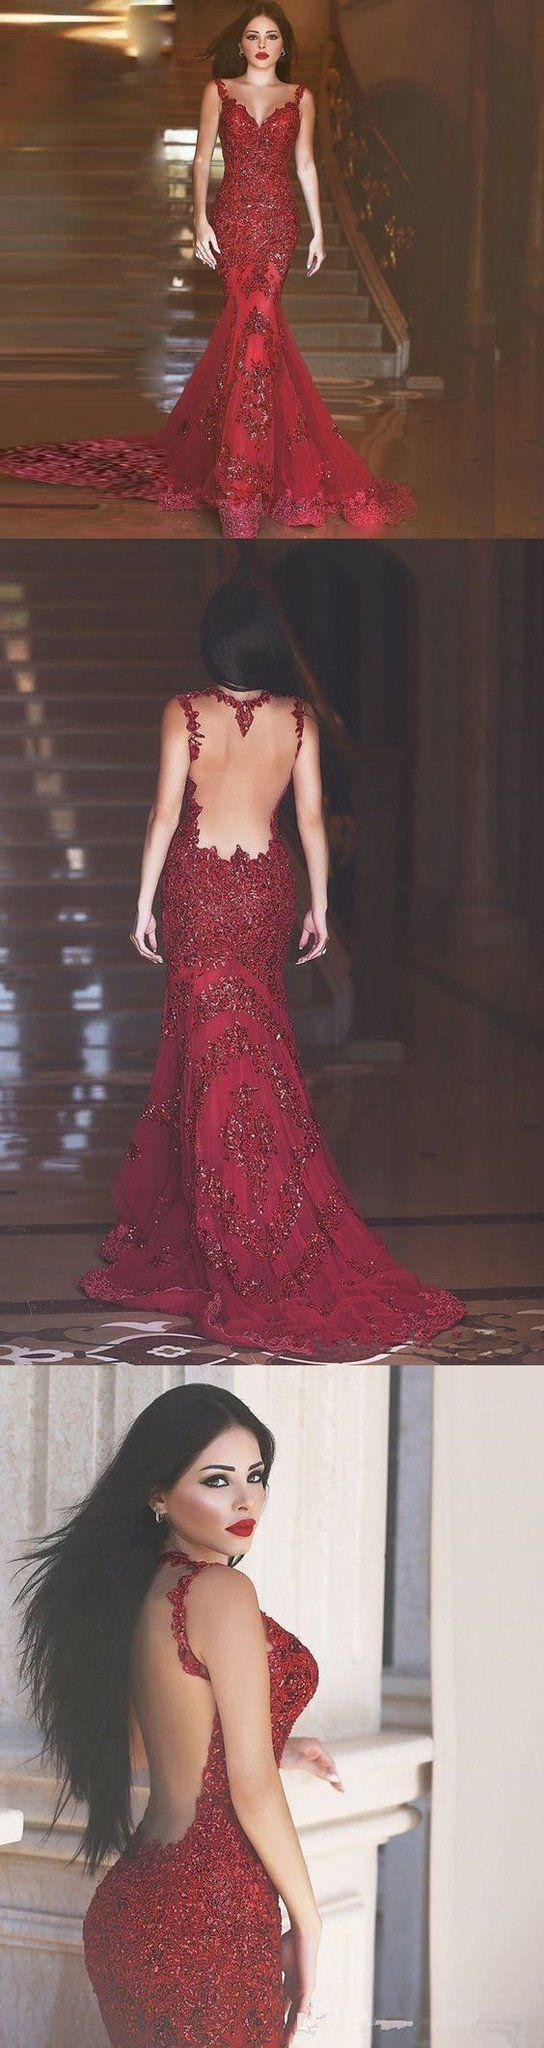 3a04409c2c Red Backless Sequin Prom Dress